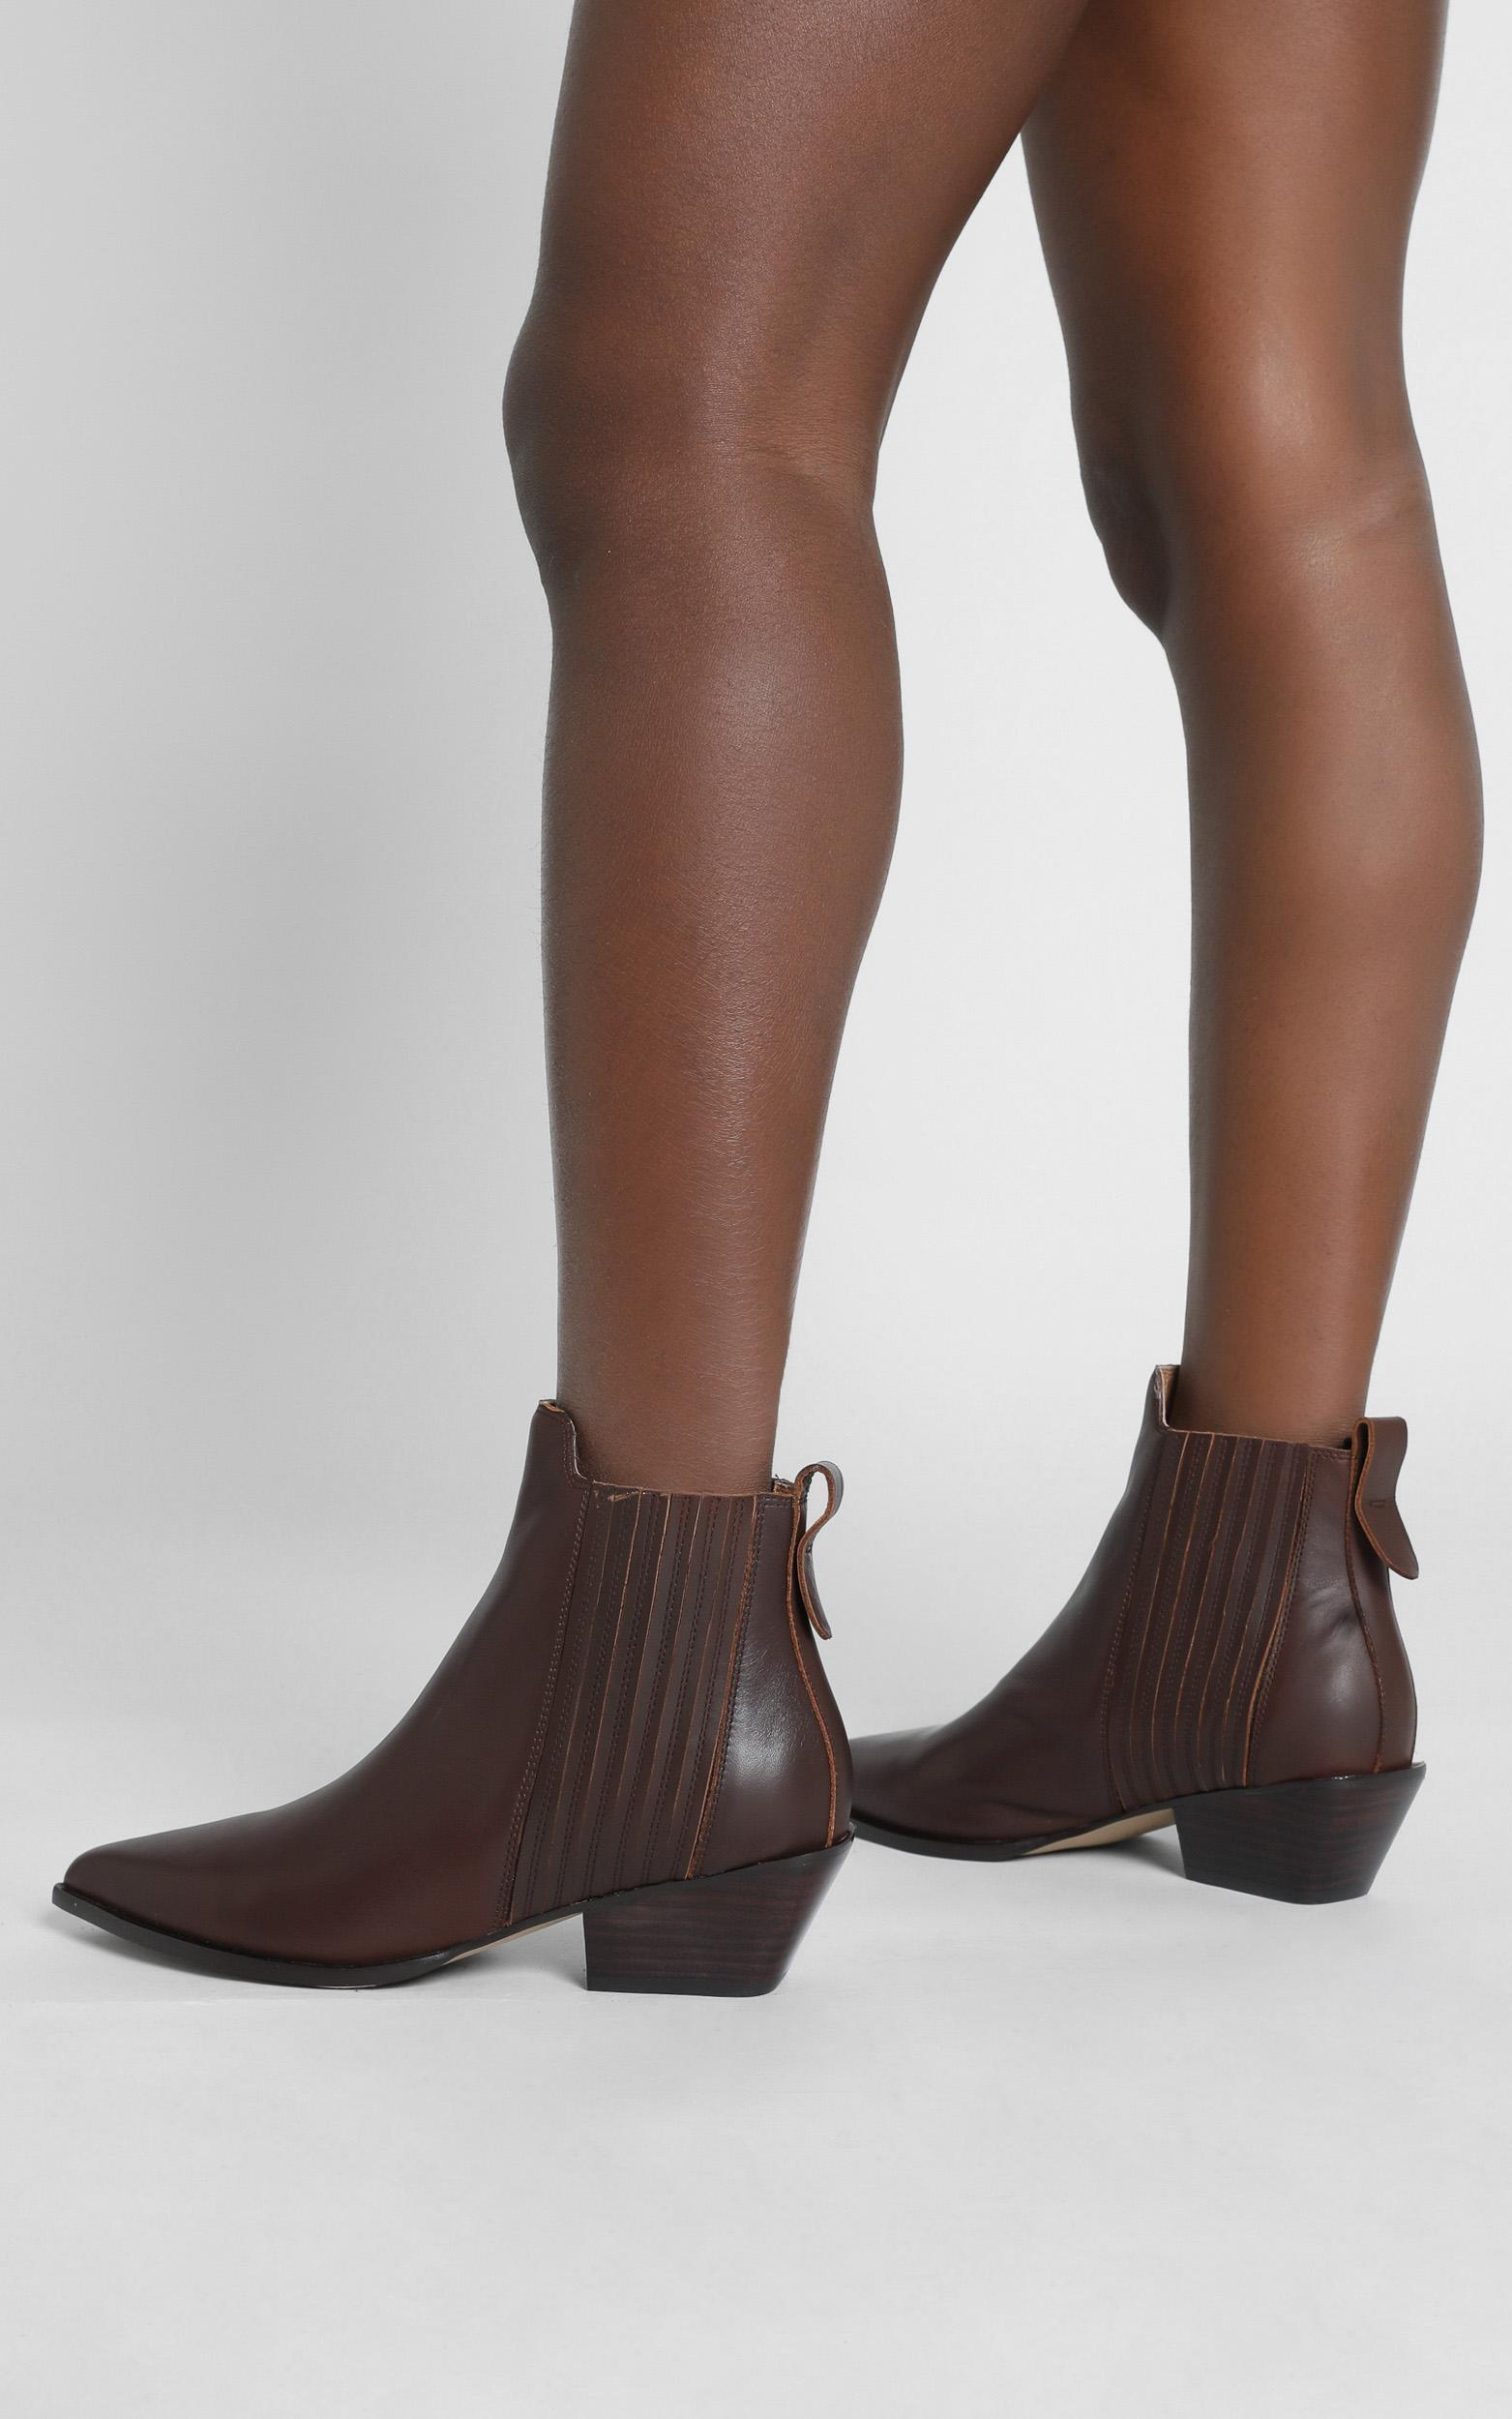 Alias Mae - Seth Boots in Choc Burnished - 36, Brown, hi-res image number null